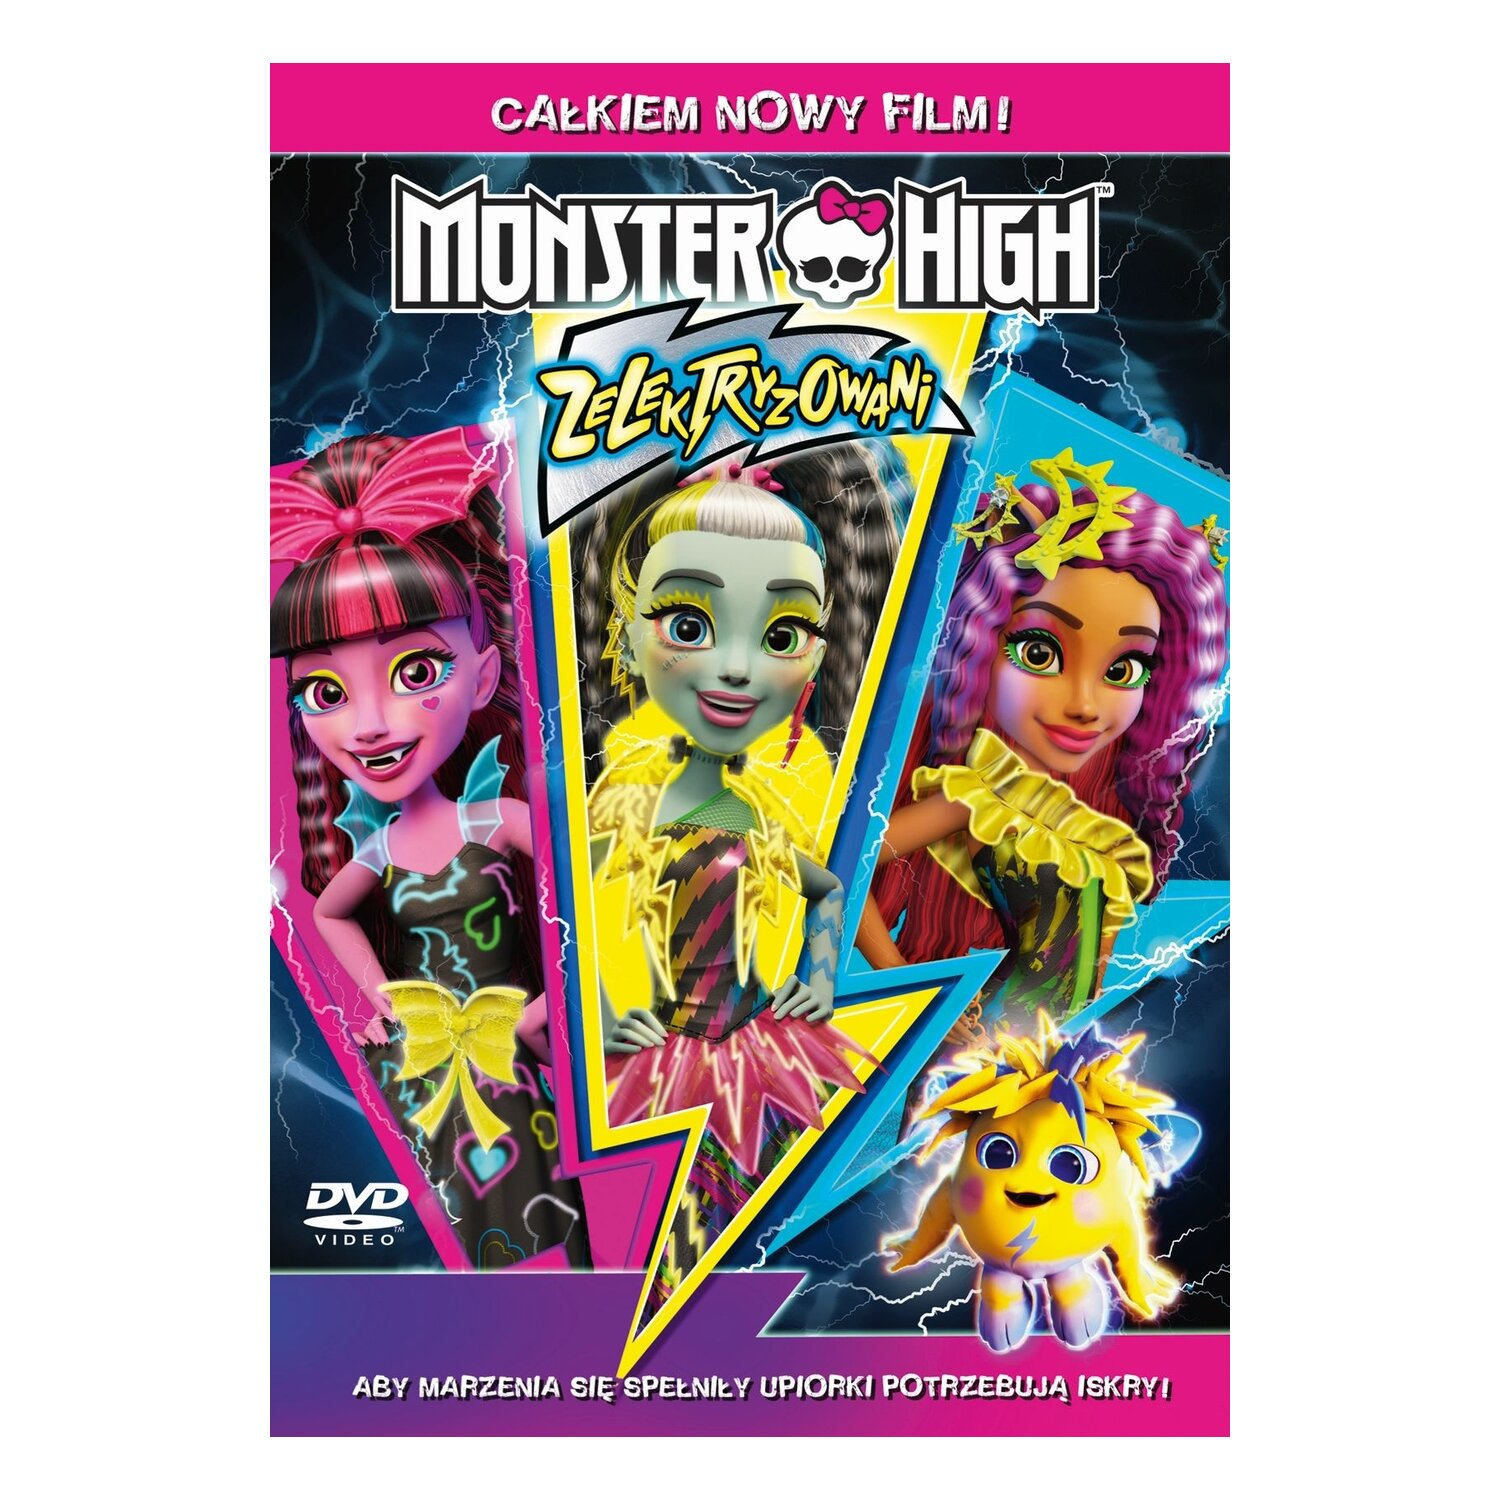 Monster High: Zelektryzowani (DVD)